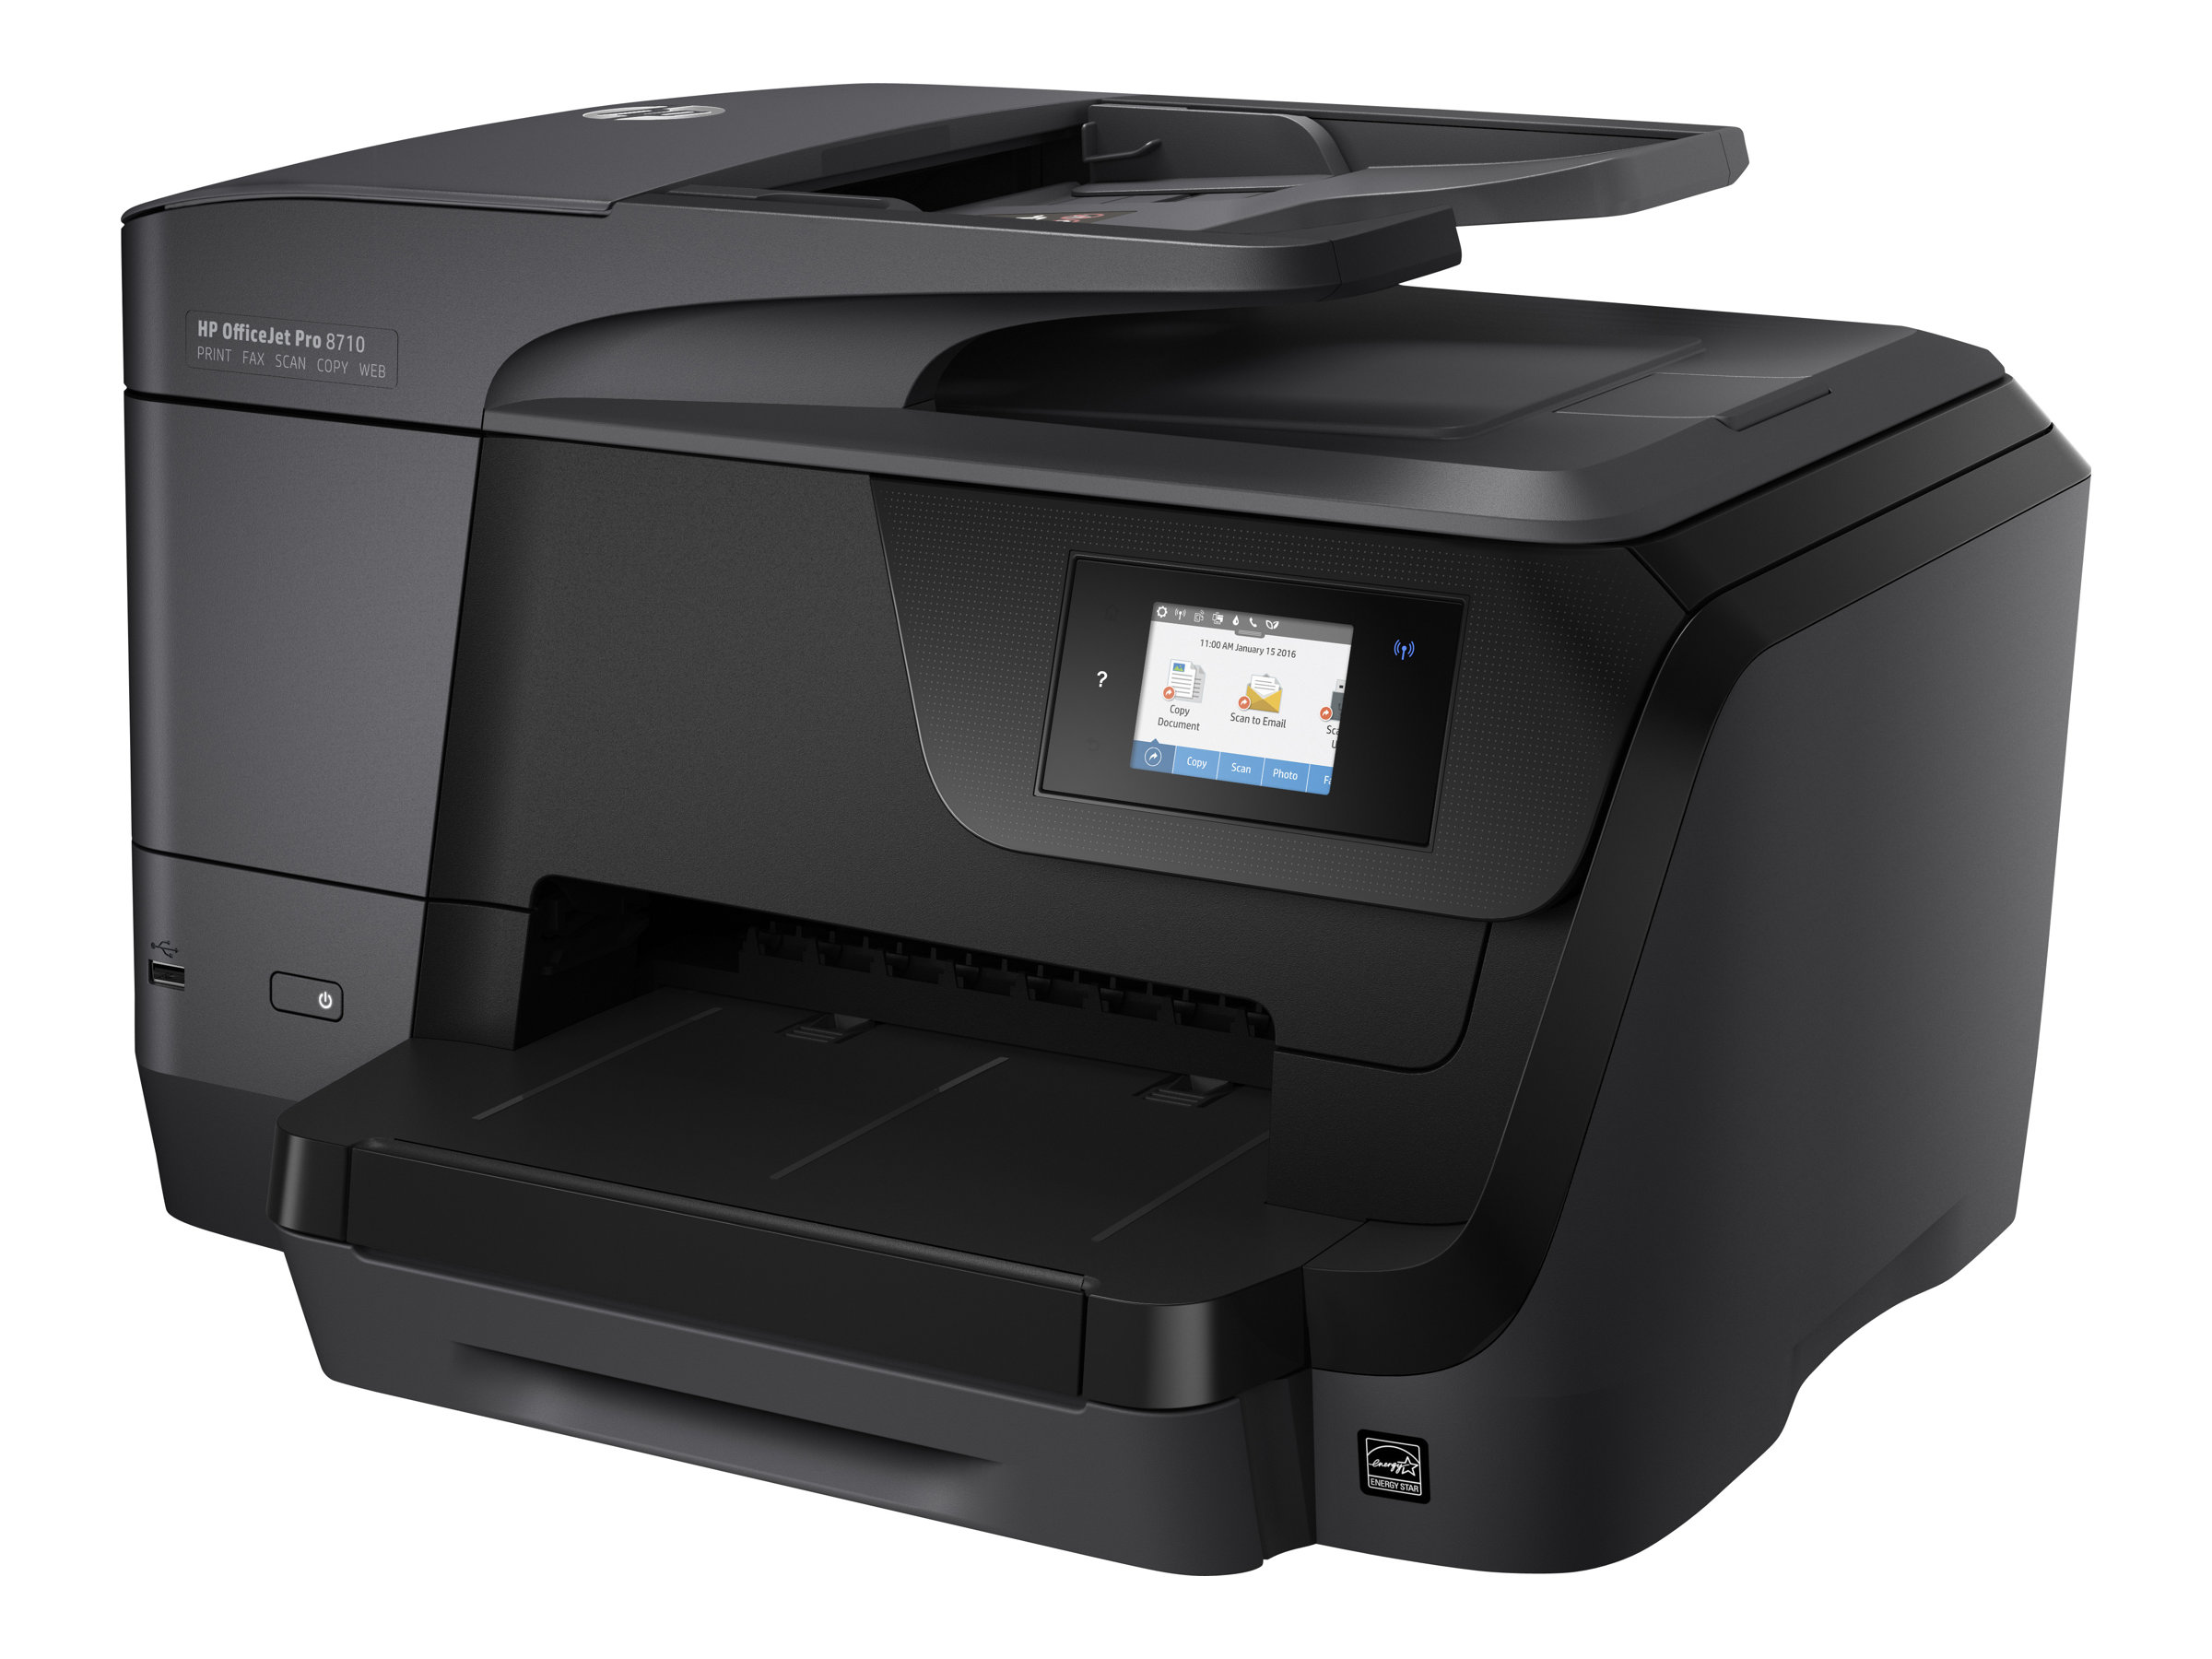 HP Officejet Pro 8710 All-In-One Printer ($199.95 - $70 Instant Rebate = $129.95 Expires 3 14 2017)